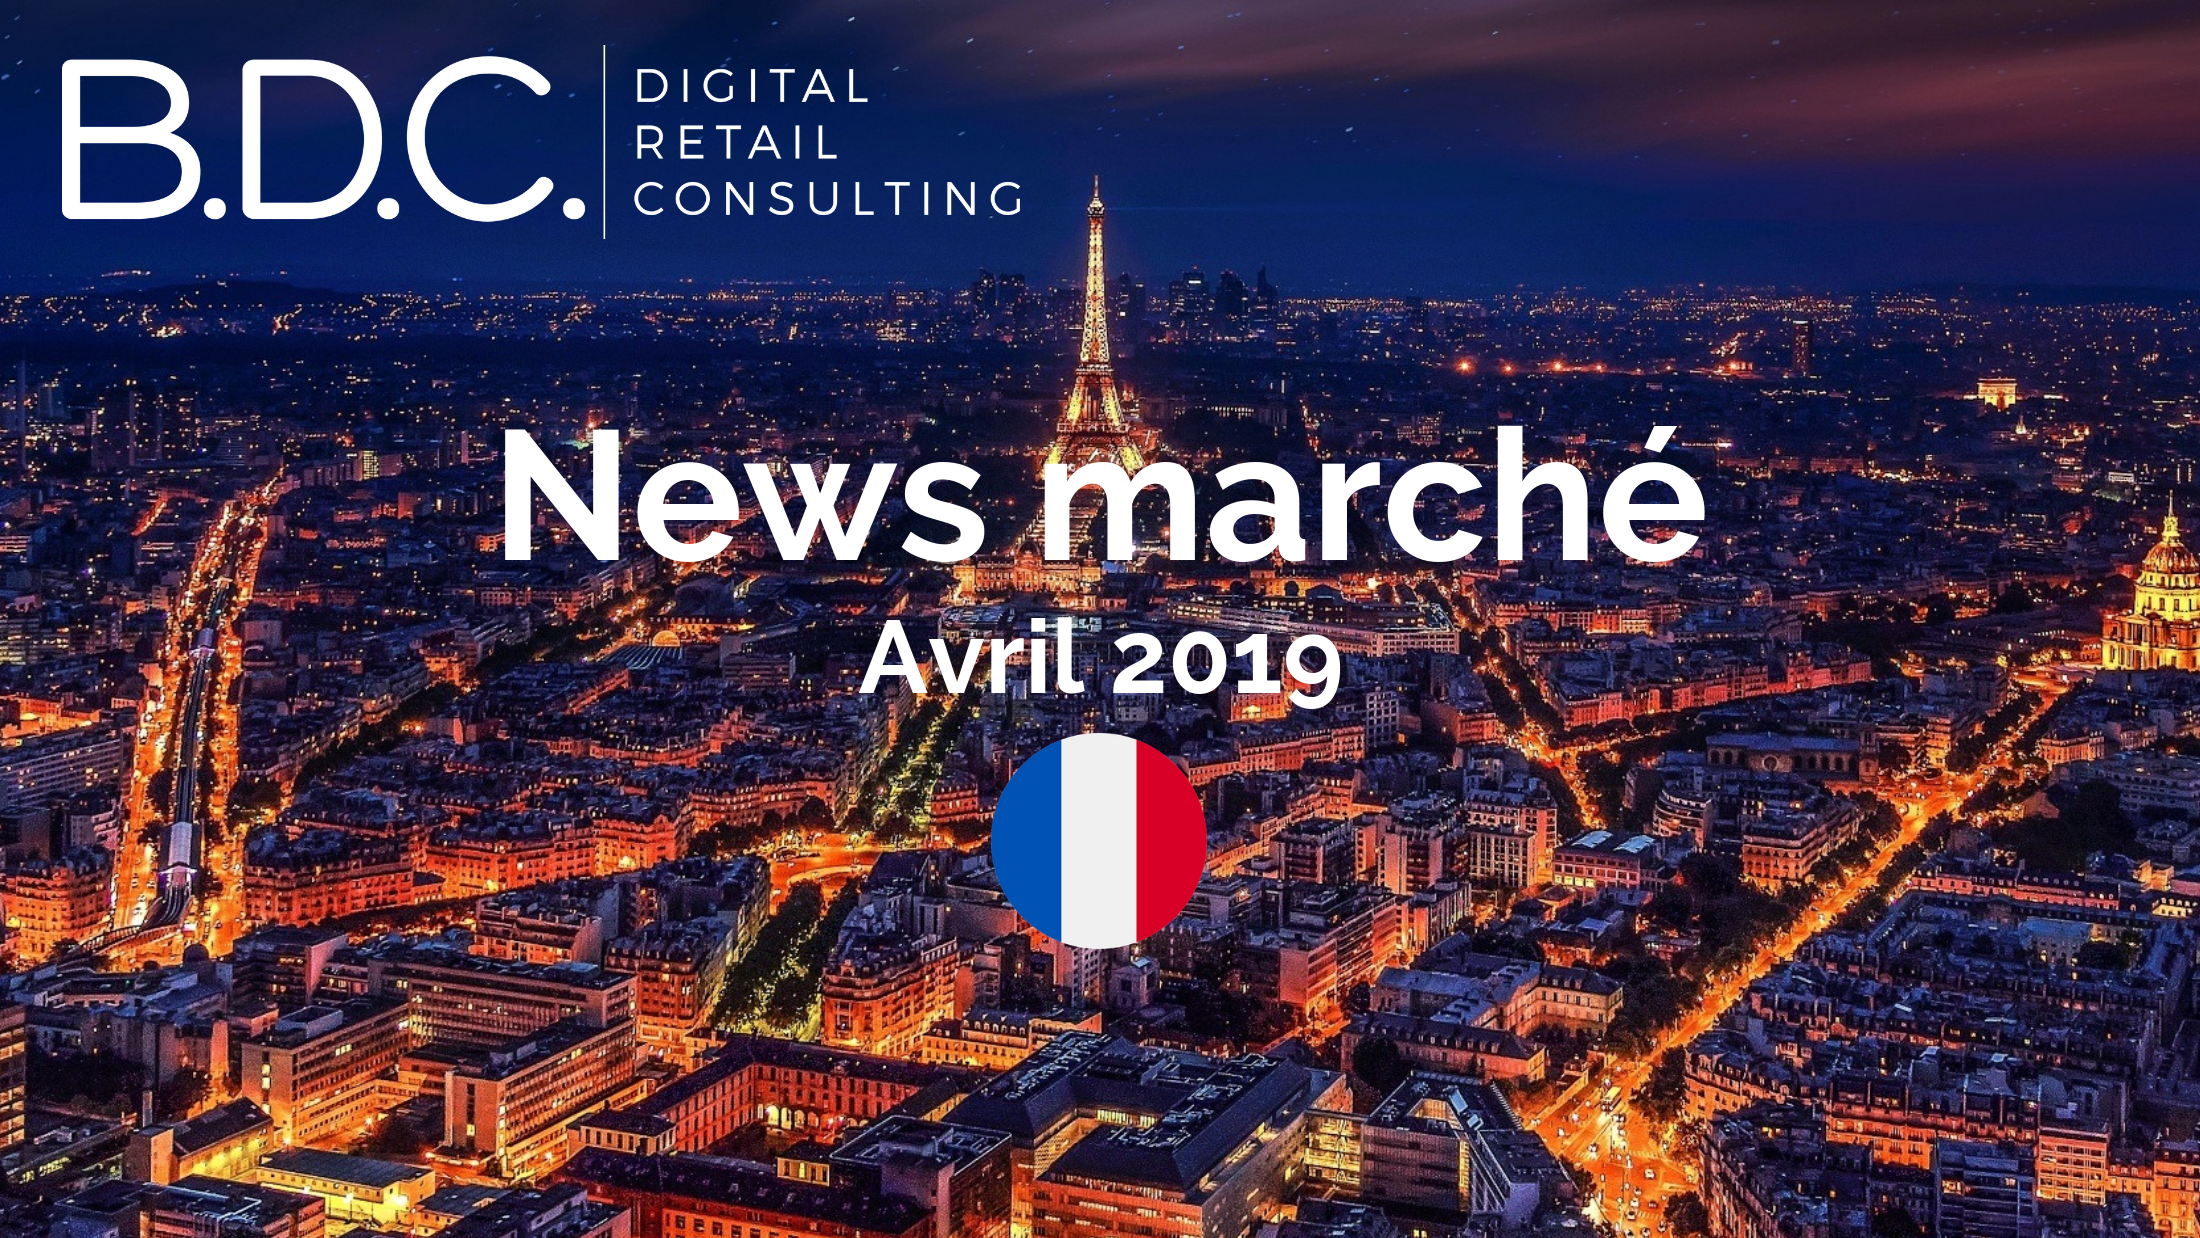 Trends News 1 - News marché - Avril 2019